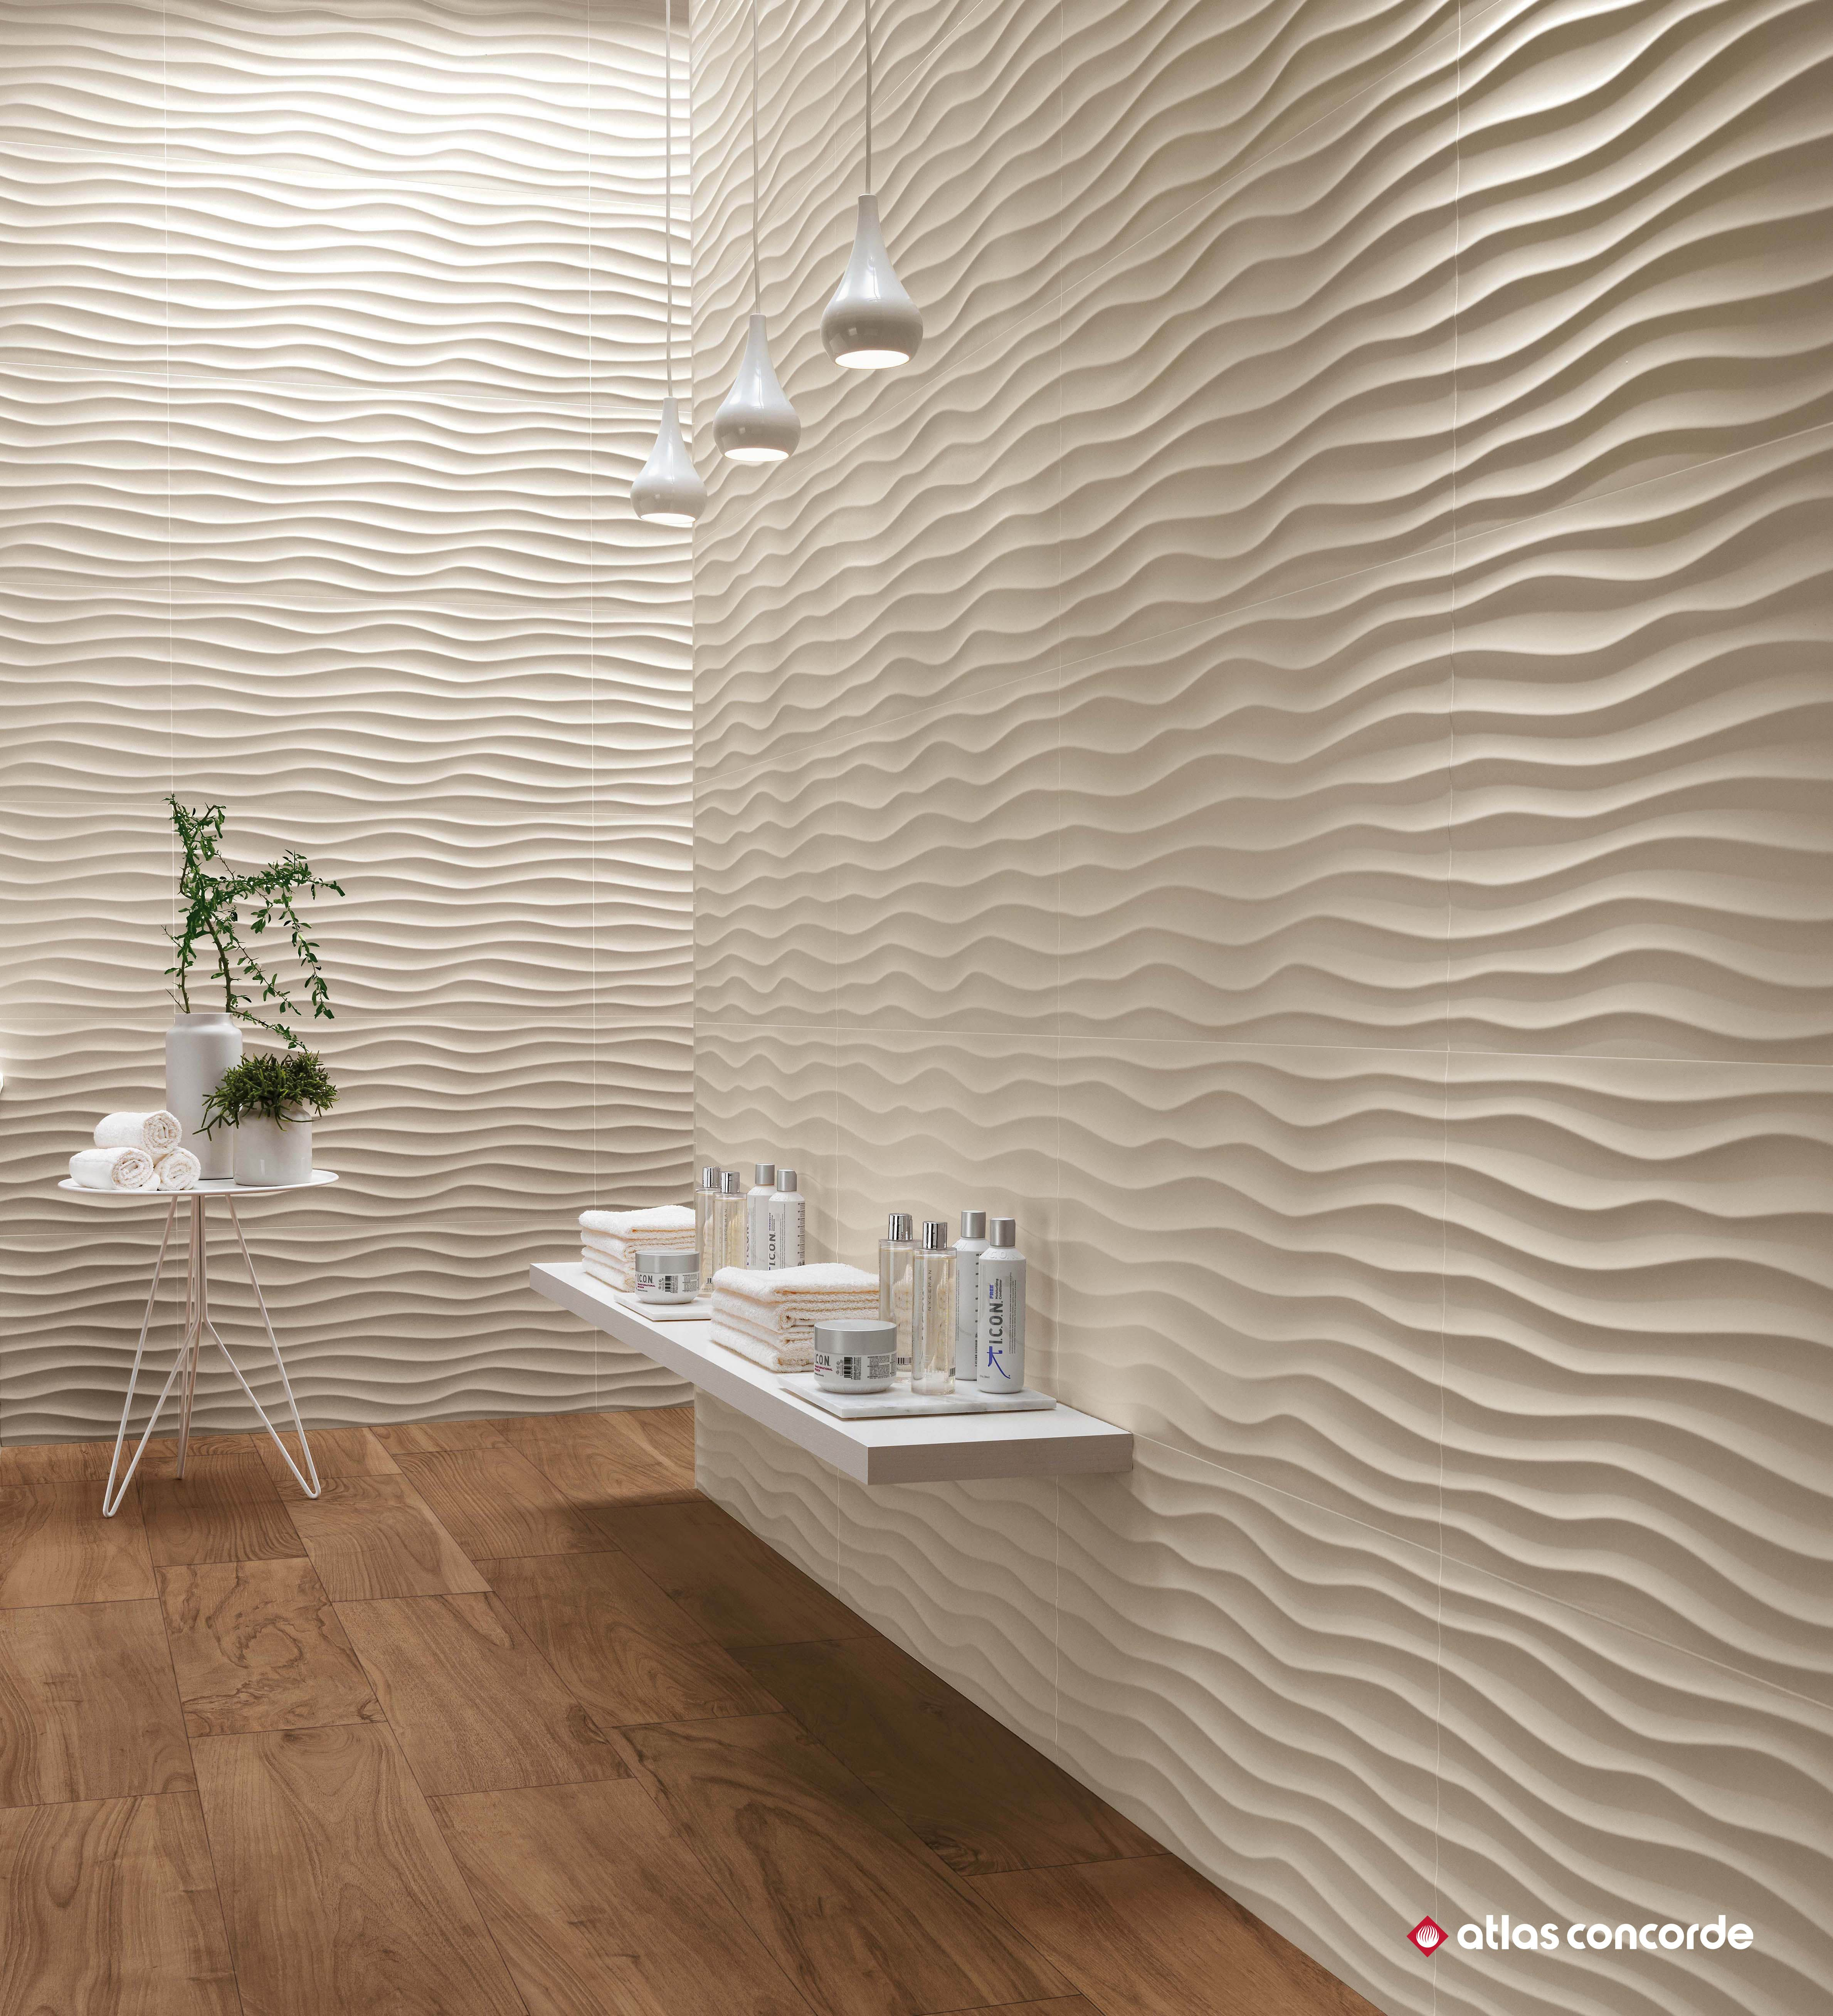 Sculptural 3d Wall Decoration For Spa And Bathroom Design Made In Italy Superior Wall Tiles For Interior Wall Cladding Modern Bathroom Tile Bathroom Interior